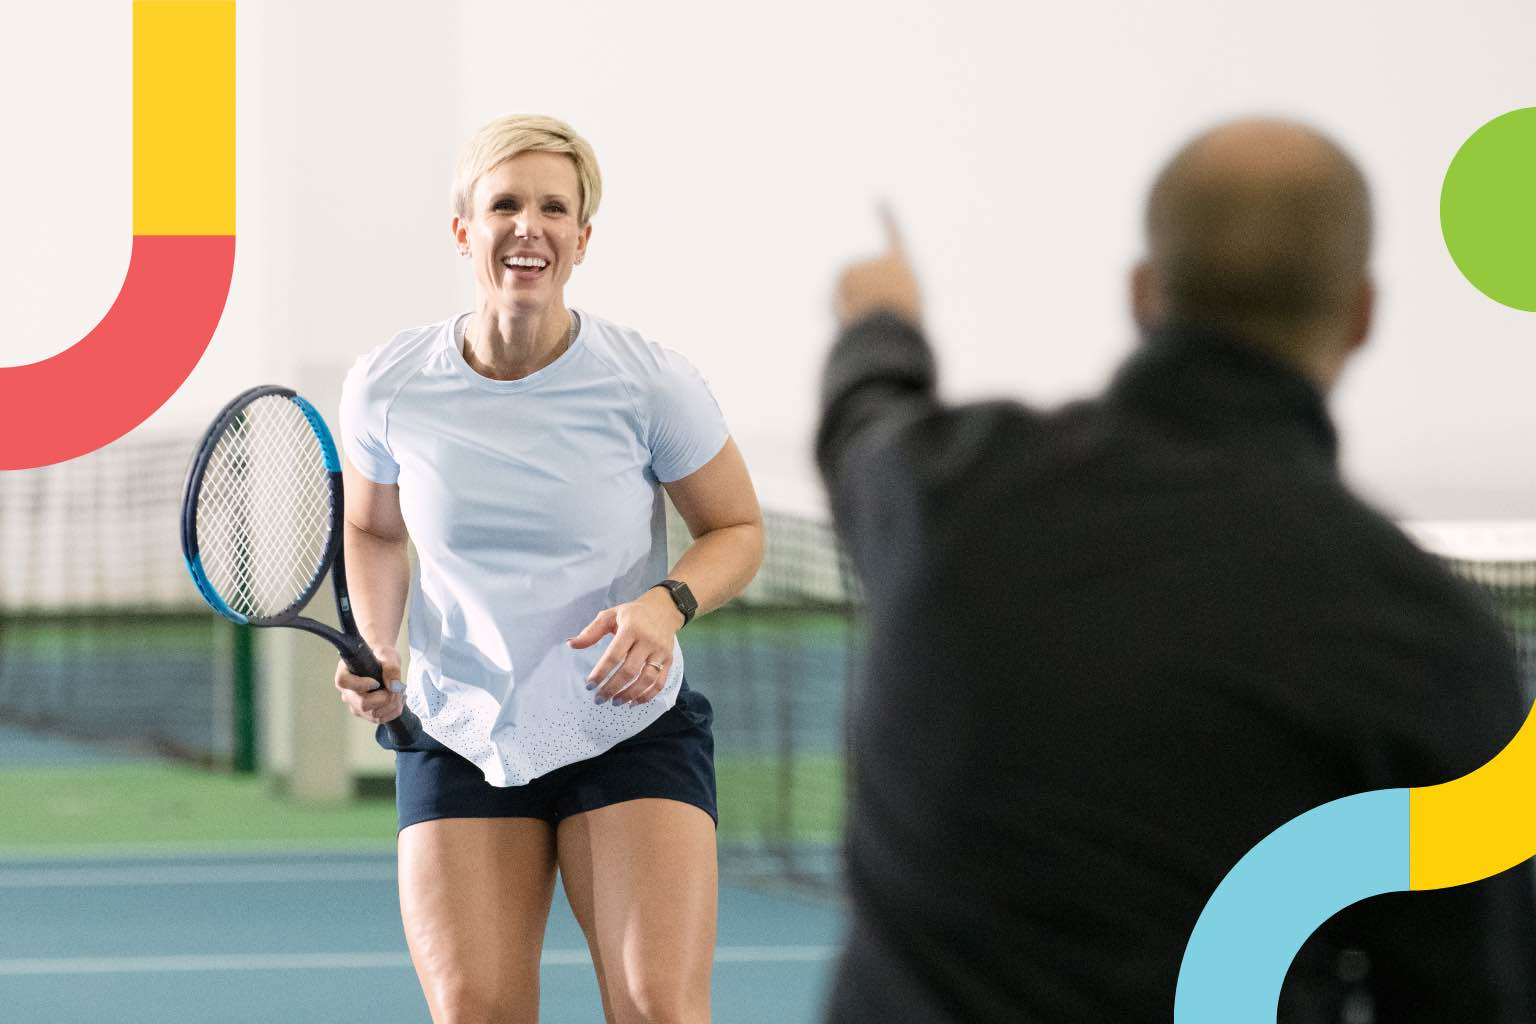 Woman holding tennis racquet smiling while man instructs her